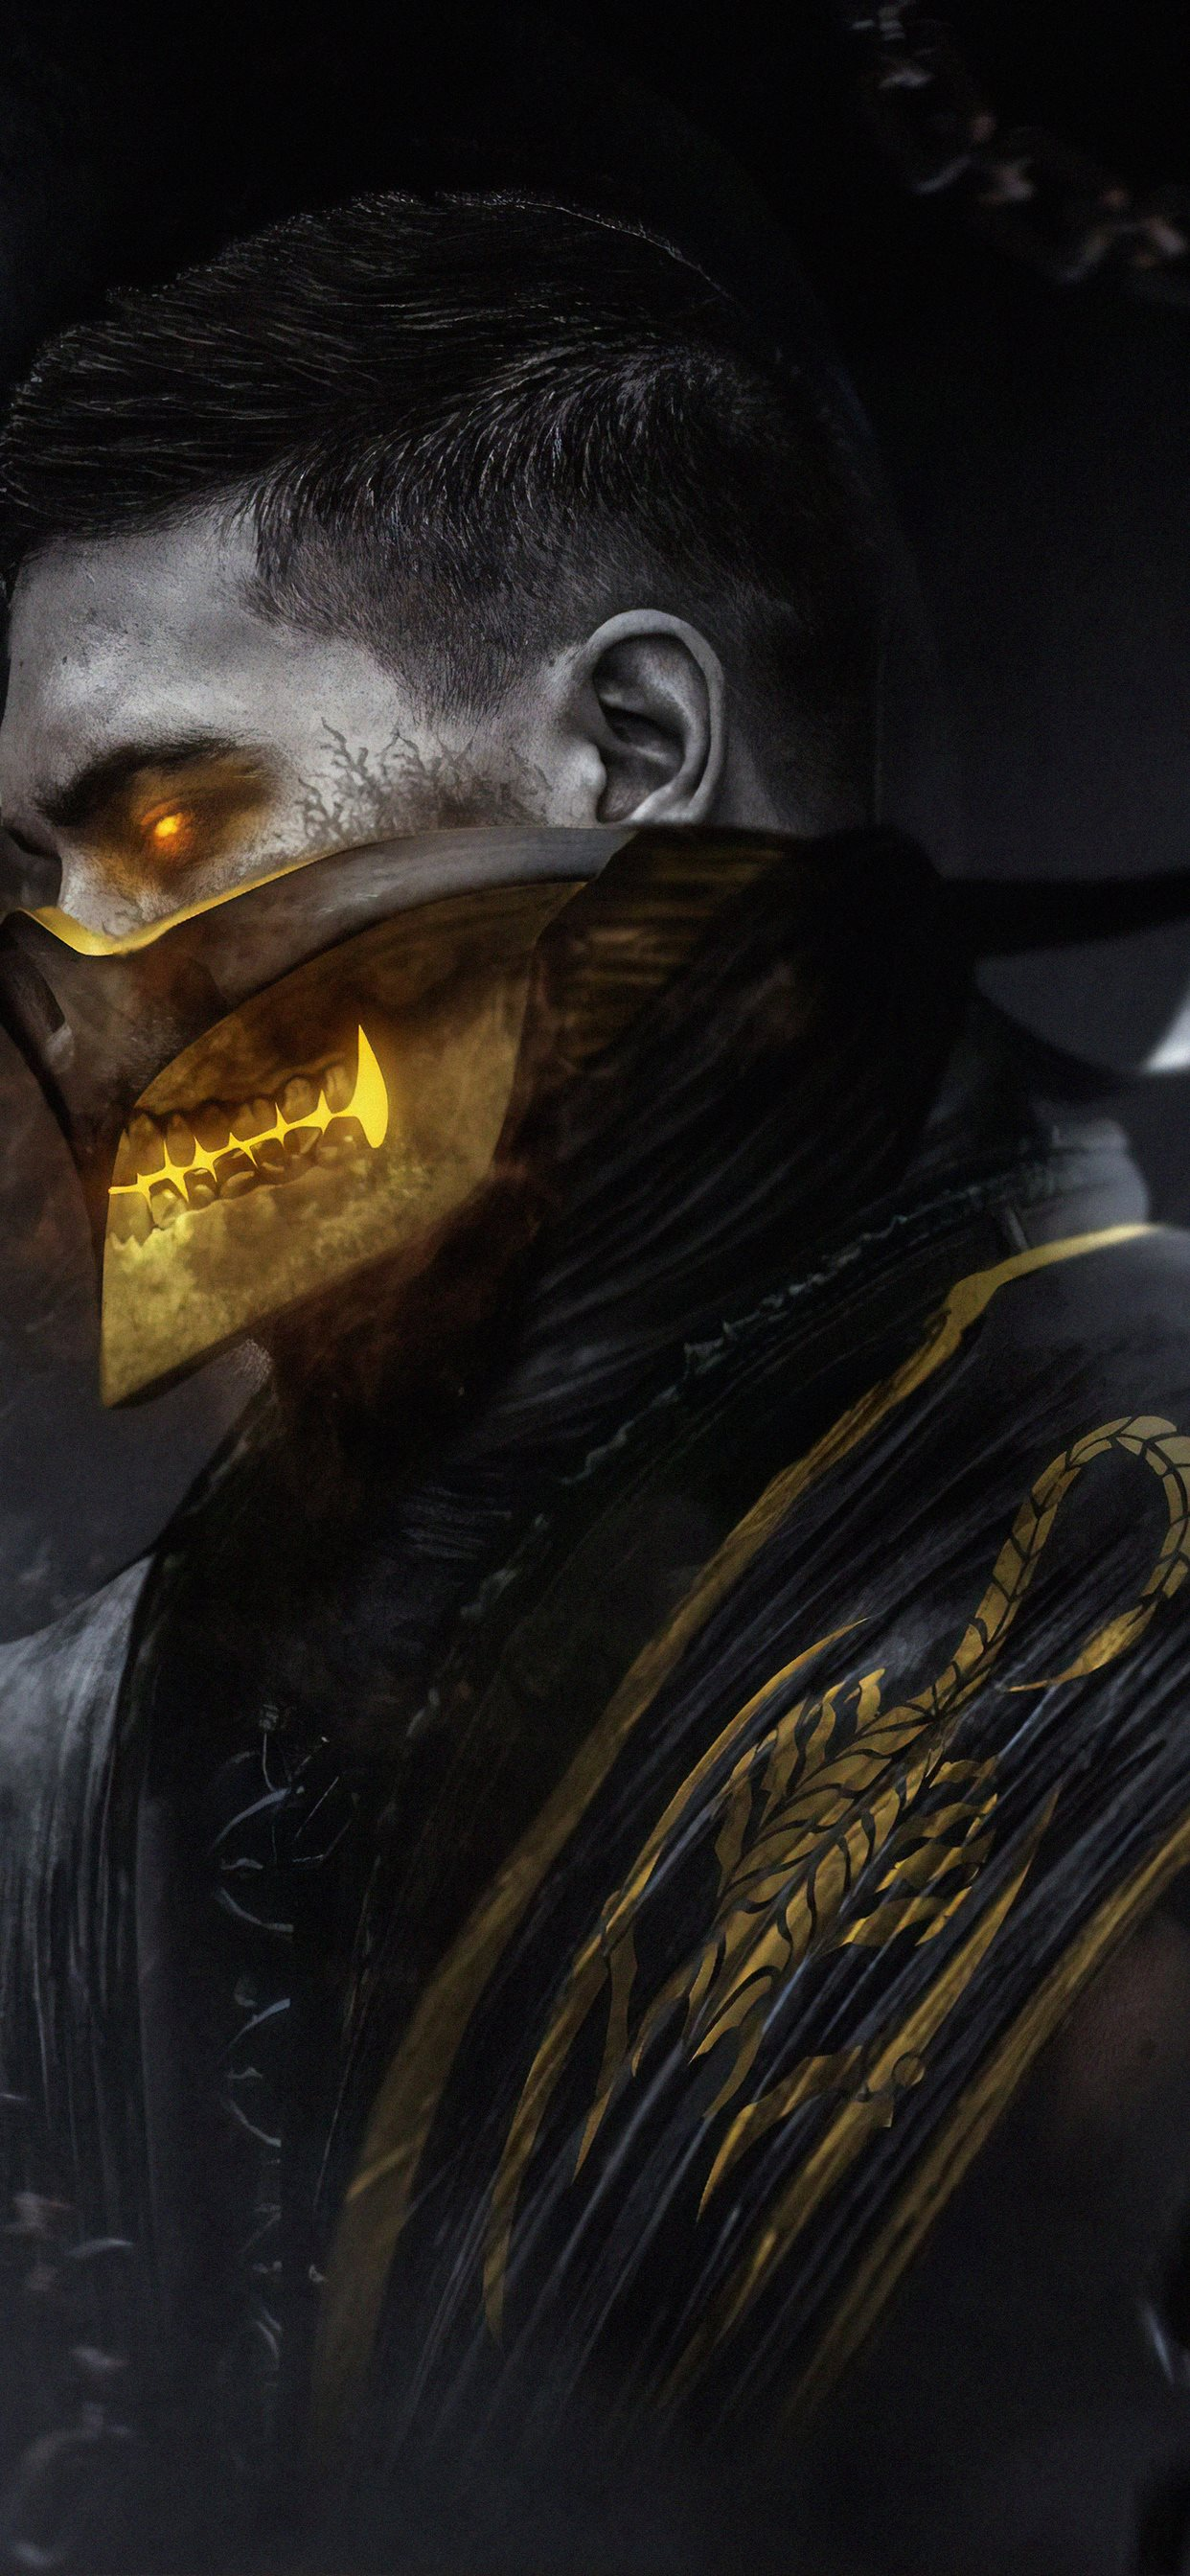 scorpion mortal kombat art iphone xs max wallpaper